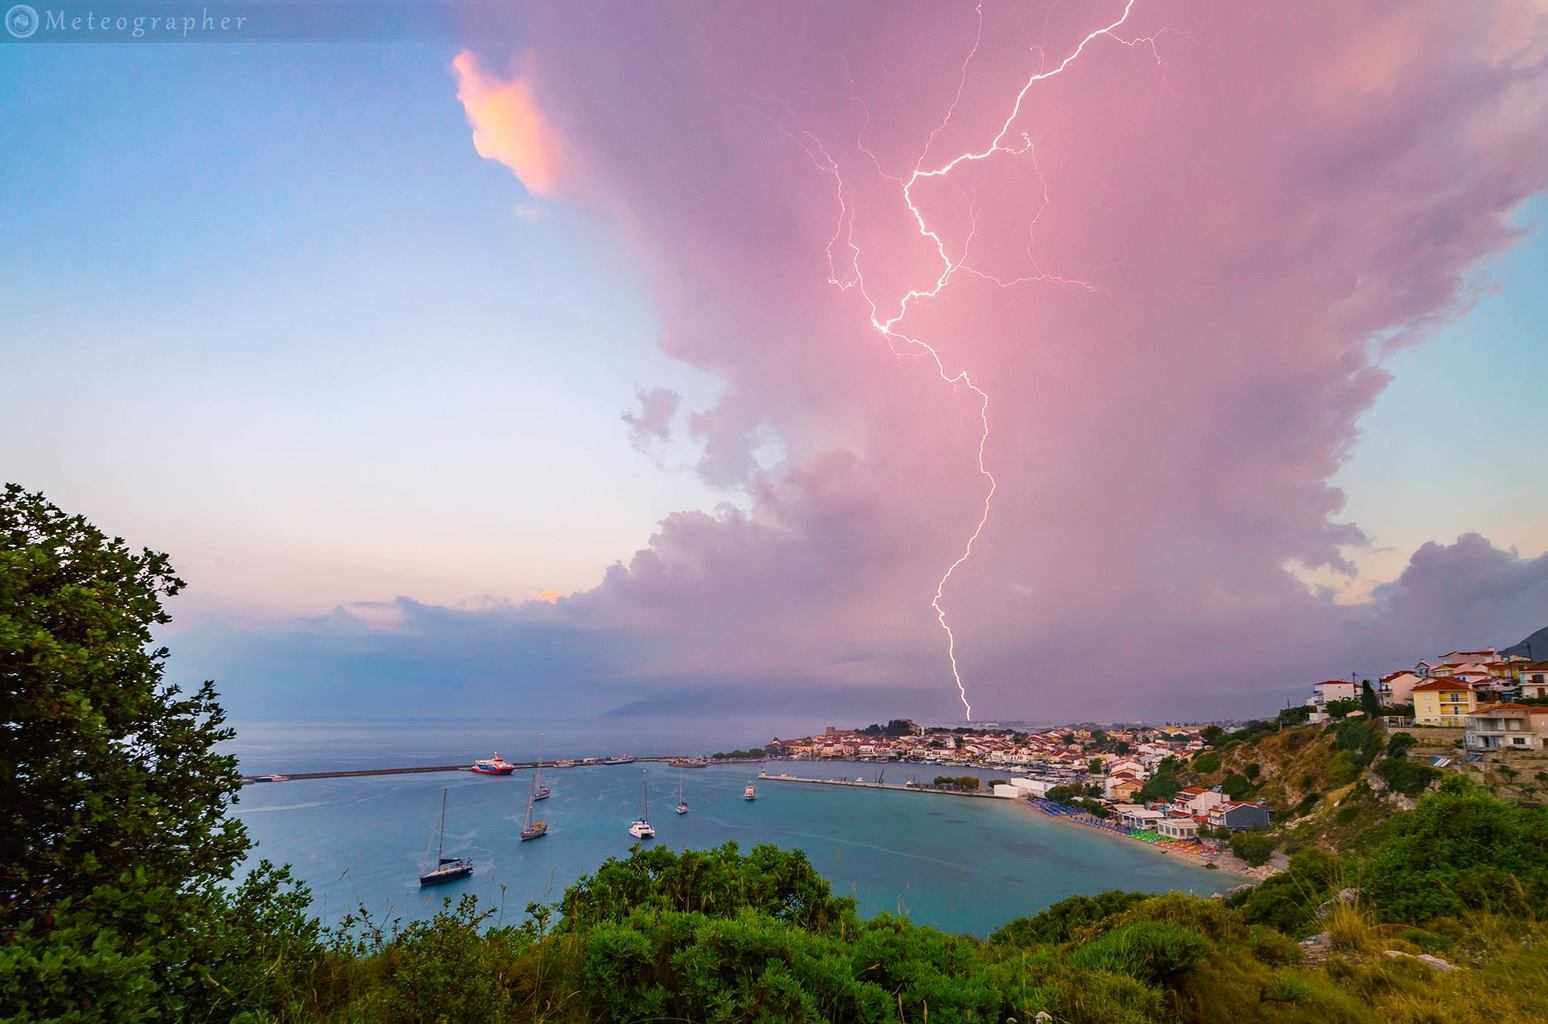 Photogenic cell spewing a lightning bolt above Pythagoreio village in Samos island, Greece during sunrise.